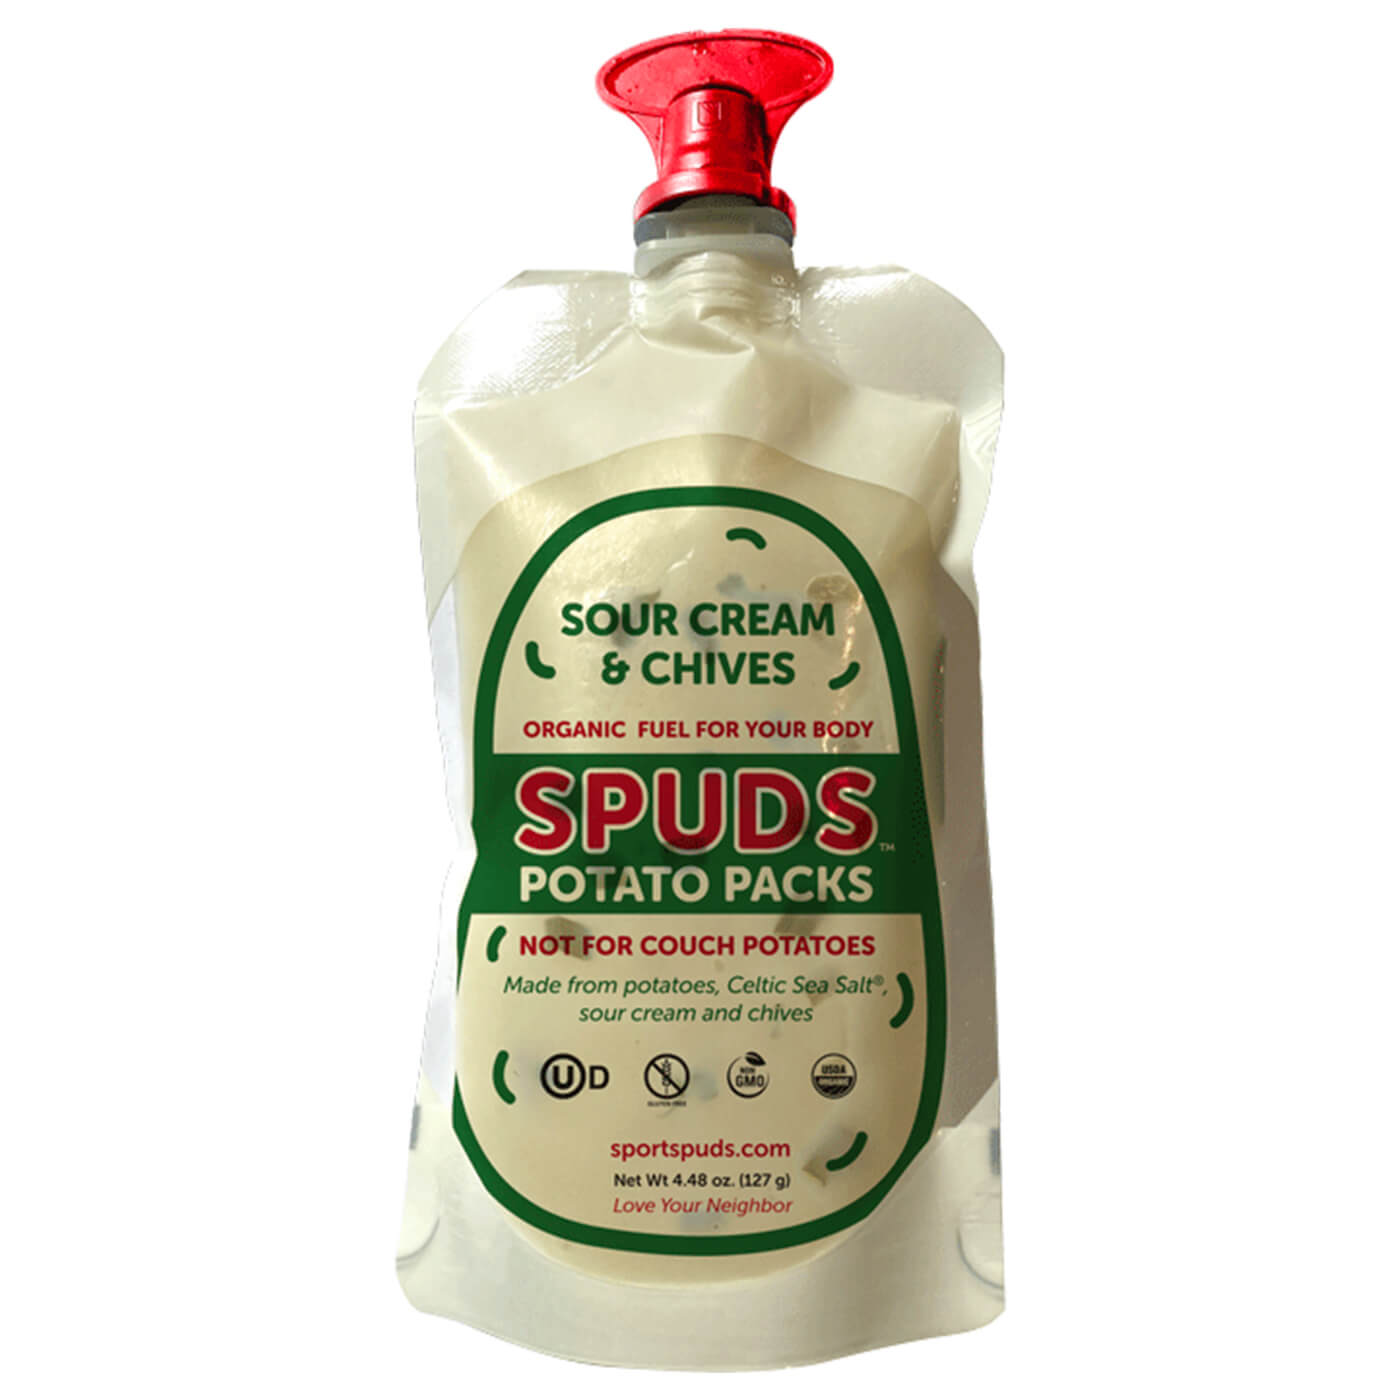 24 Pack Sour Cream & Chives Spuds Potato Packs